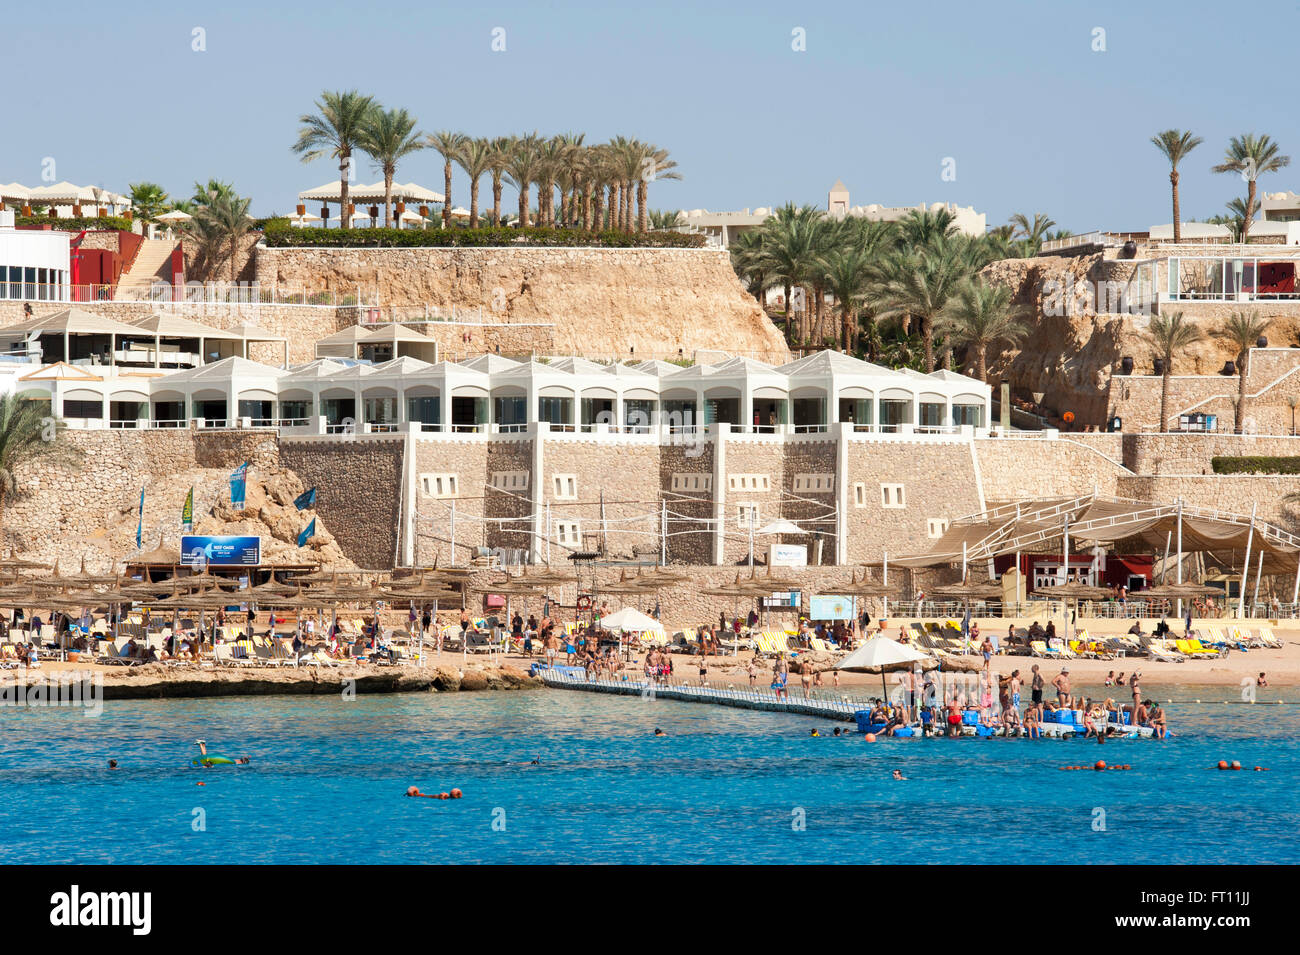 People bathing in Red Sea, Sharm el-Sheikh, South Sinai, Egypt - Stock Image